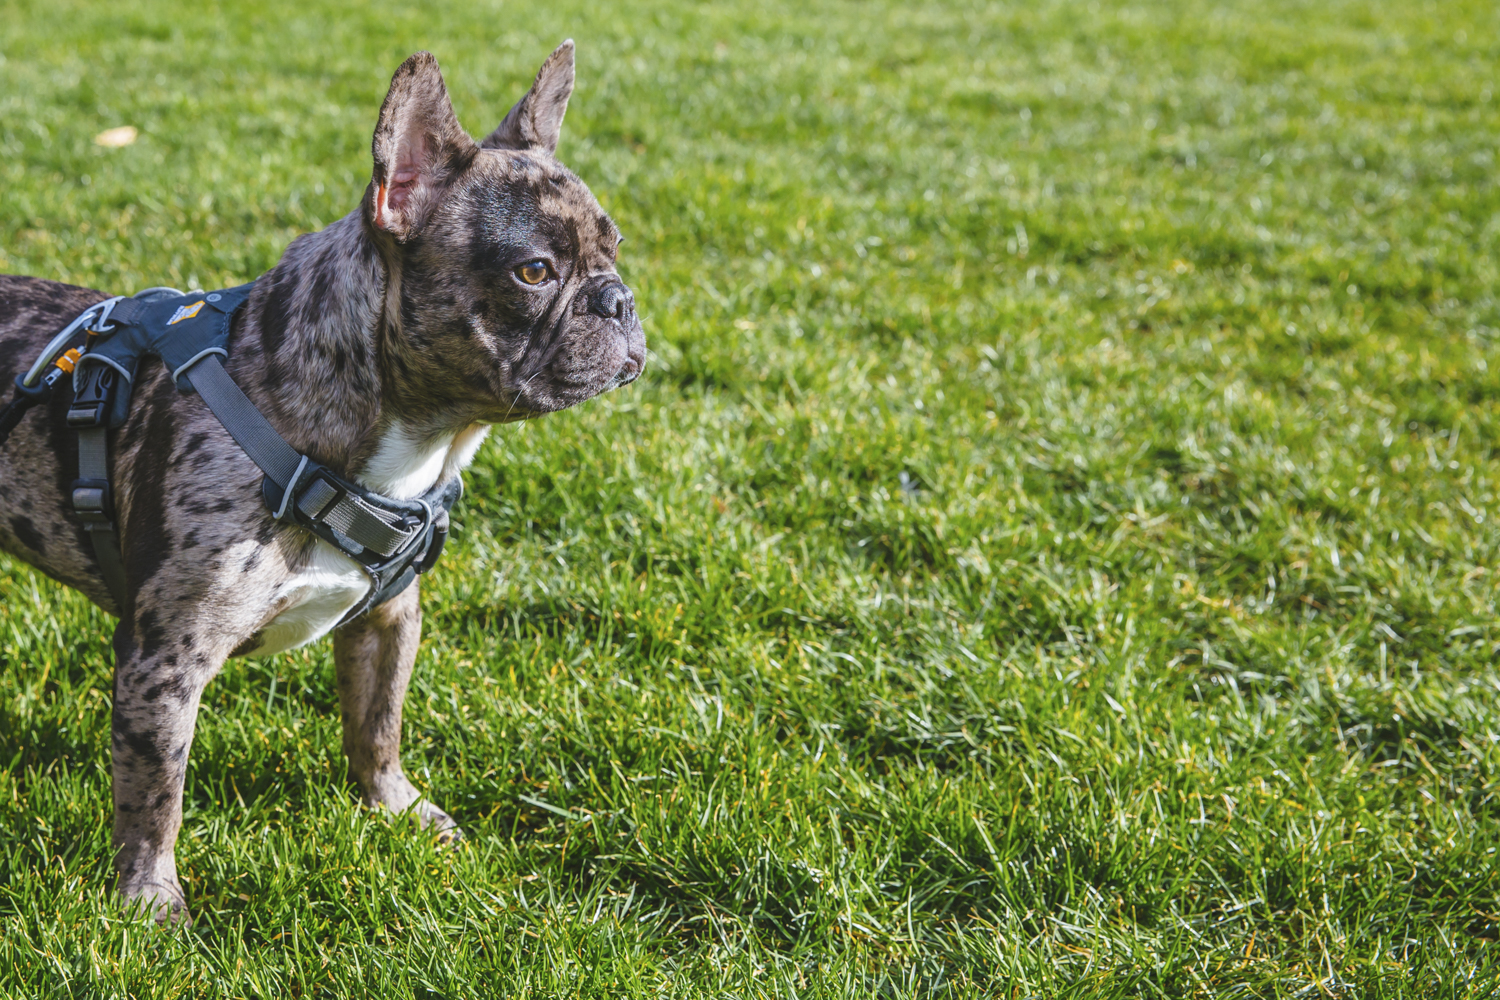 "Meet one-year-old Mateo! Mateo is a French Bulldog living life in the big city. You can probably see Mateo strolling the streets of downtown somewhere between Amazon dog park, Nordstrom, Lake Union, Mud Bay and Sculpture Park (his favorite spots!). Mateo likes blueberries, broccoli, peanut butter, cuddling, stealing other dogs balls at the park, giving kisses, chewing on furniture, ripping apart toys and going into ""gremlin mode."" He dislikes sirens, vacuums and when other dogs don't want to play with him. You can follow the adventures of Mateo the city pup on instagram at @mateothemerle.{ }The Seattle RUFFined Spotlight is a weekly profile of local pets living and loving life in the PNW. If you or someone you know has a pet you'd like featured, email us at hello@seattlerefined.com or tag #SeattleRUFFined and your furbaby could be the next spotlighted! (Image: Sunita Martini / Seattle Refined)."